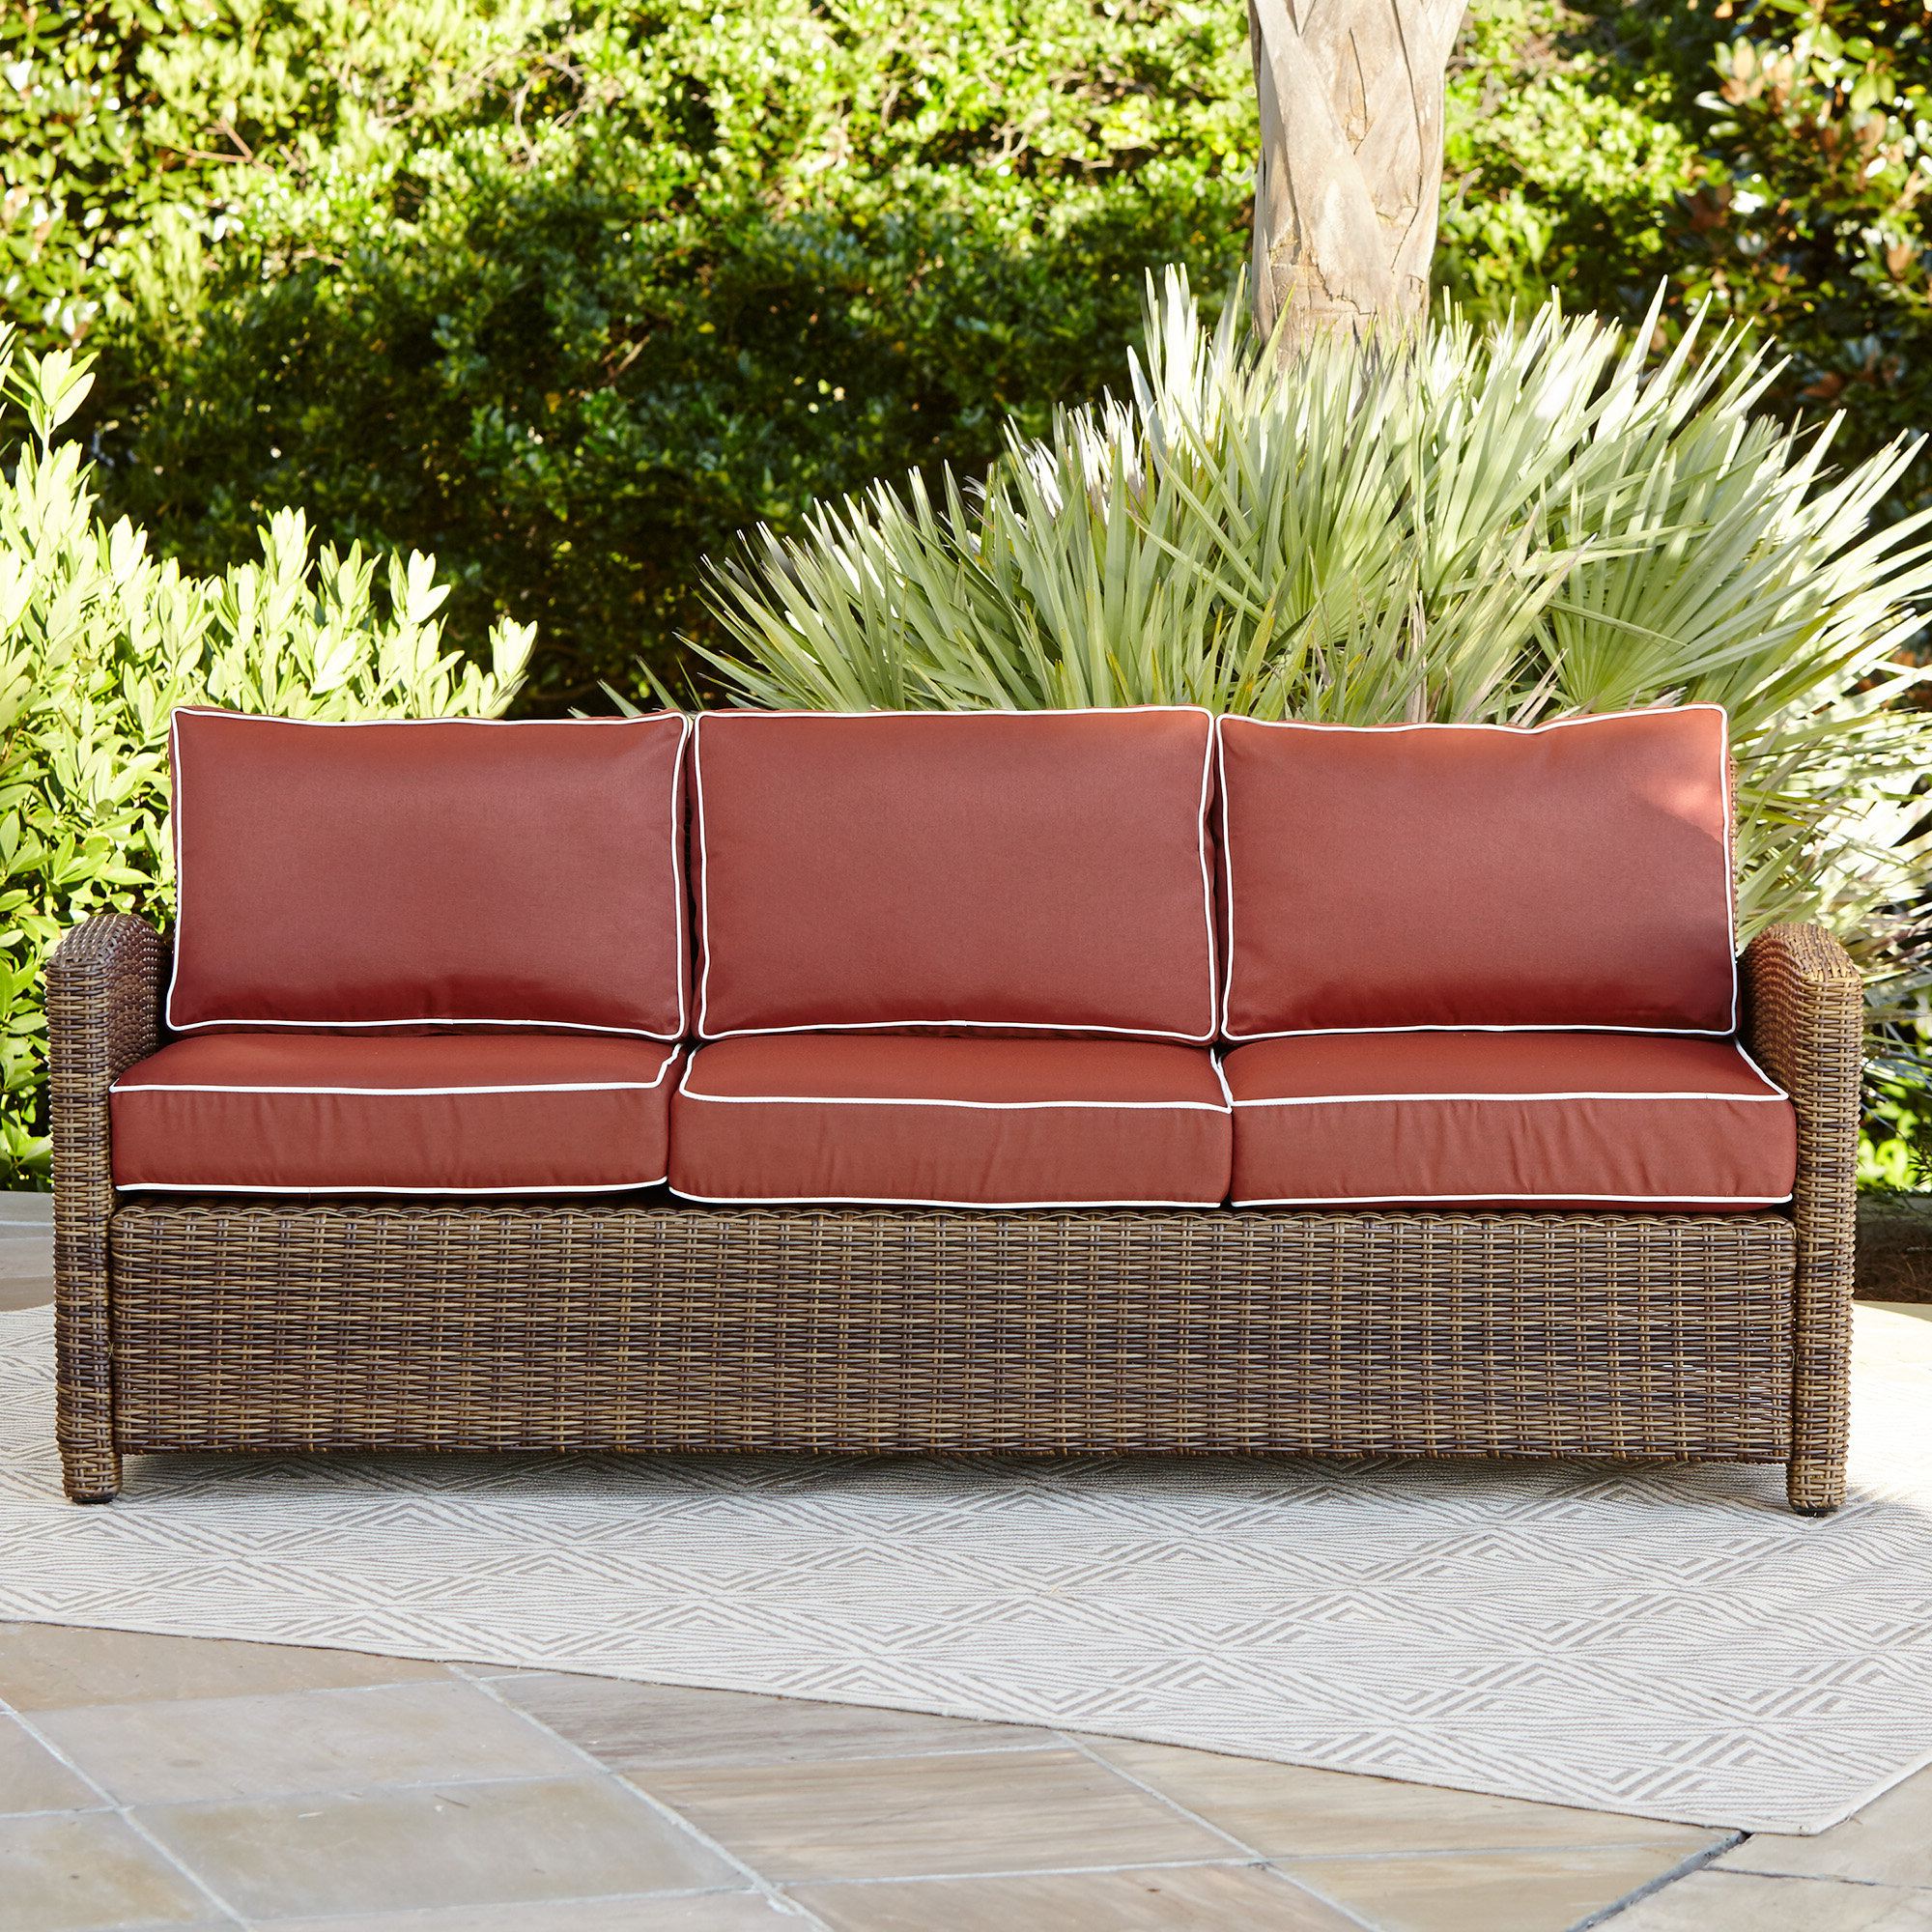 Most Current Lawson Patio Sofas With Cushions Throughout Lawson Patio Sofa With Cushions (Gallery 5 of 25)